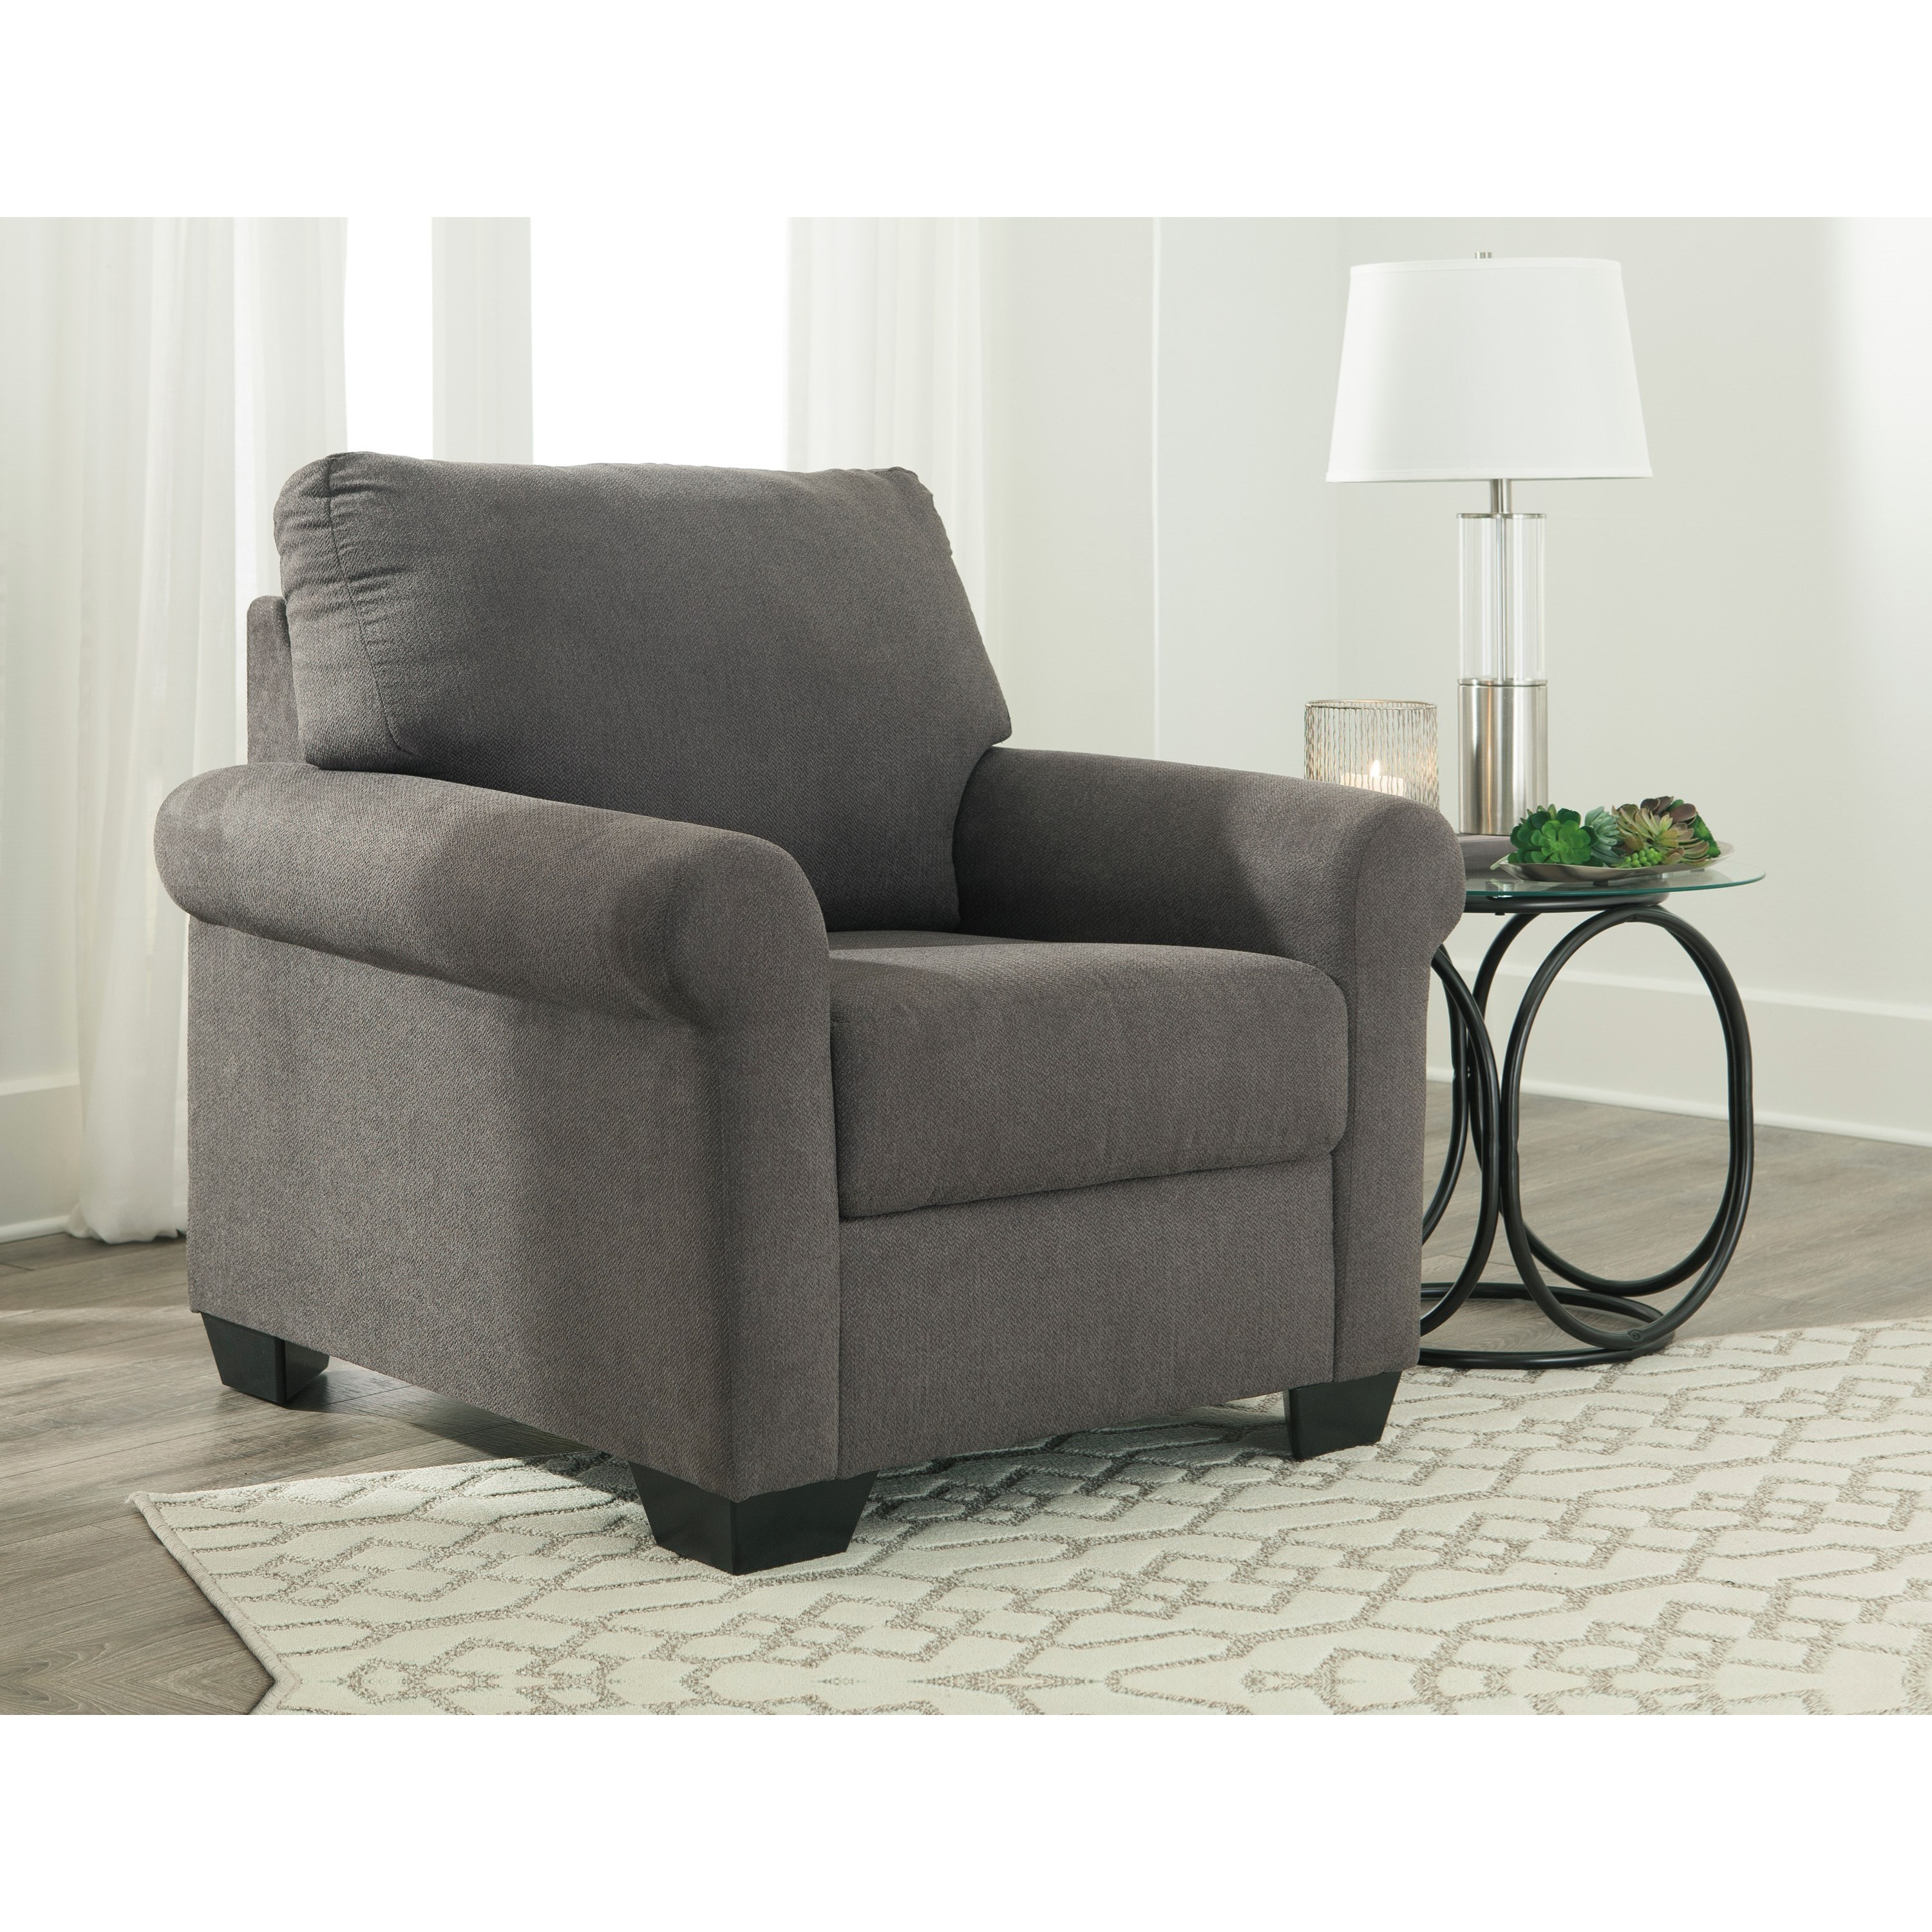 Ashley furniture kexlor 1050120 transitional accent chair for Ashley furniture appleton